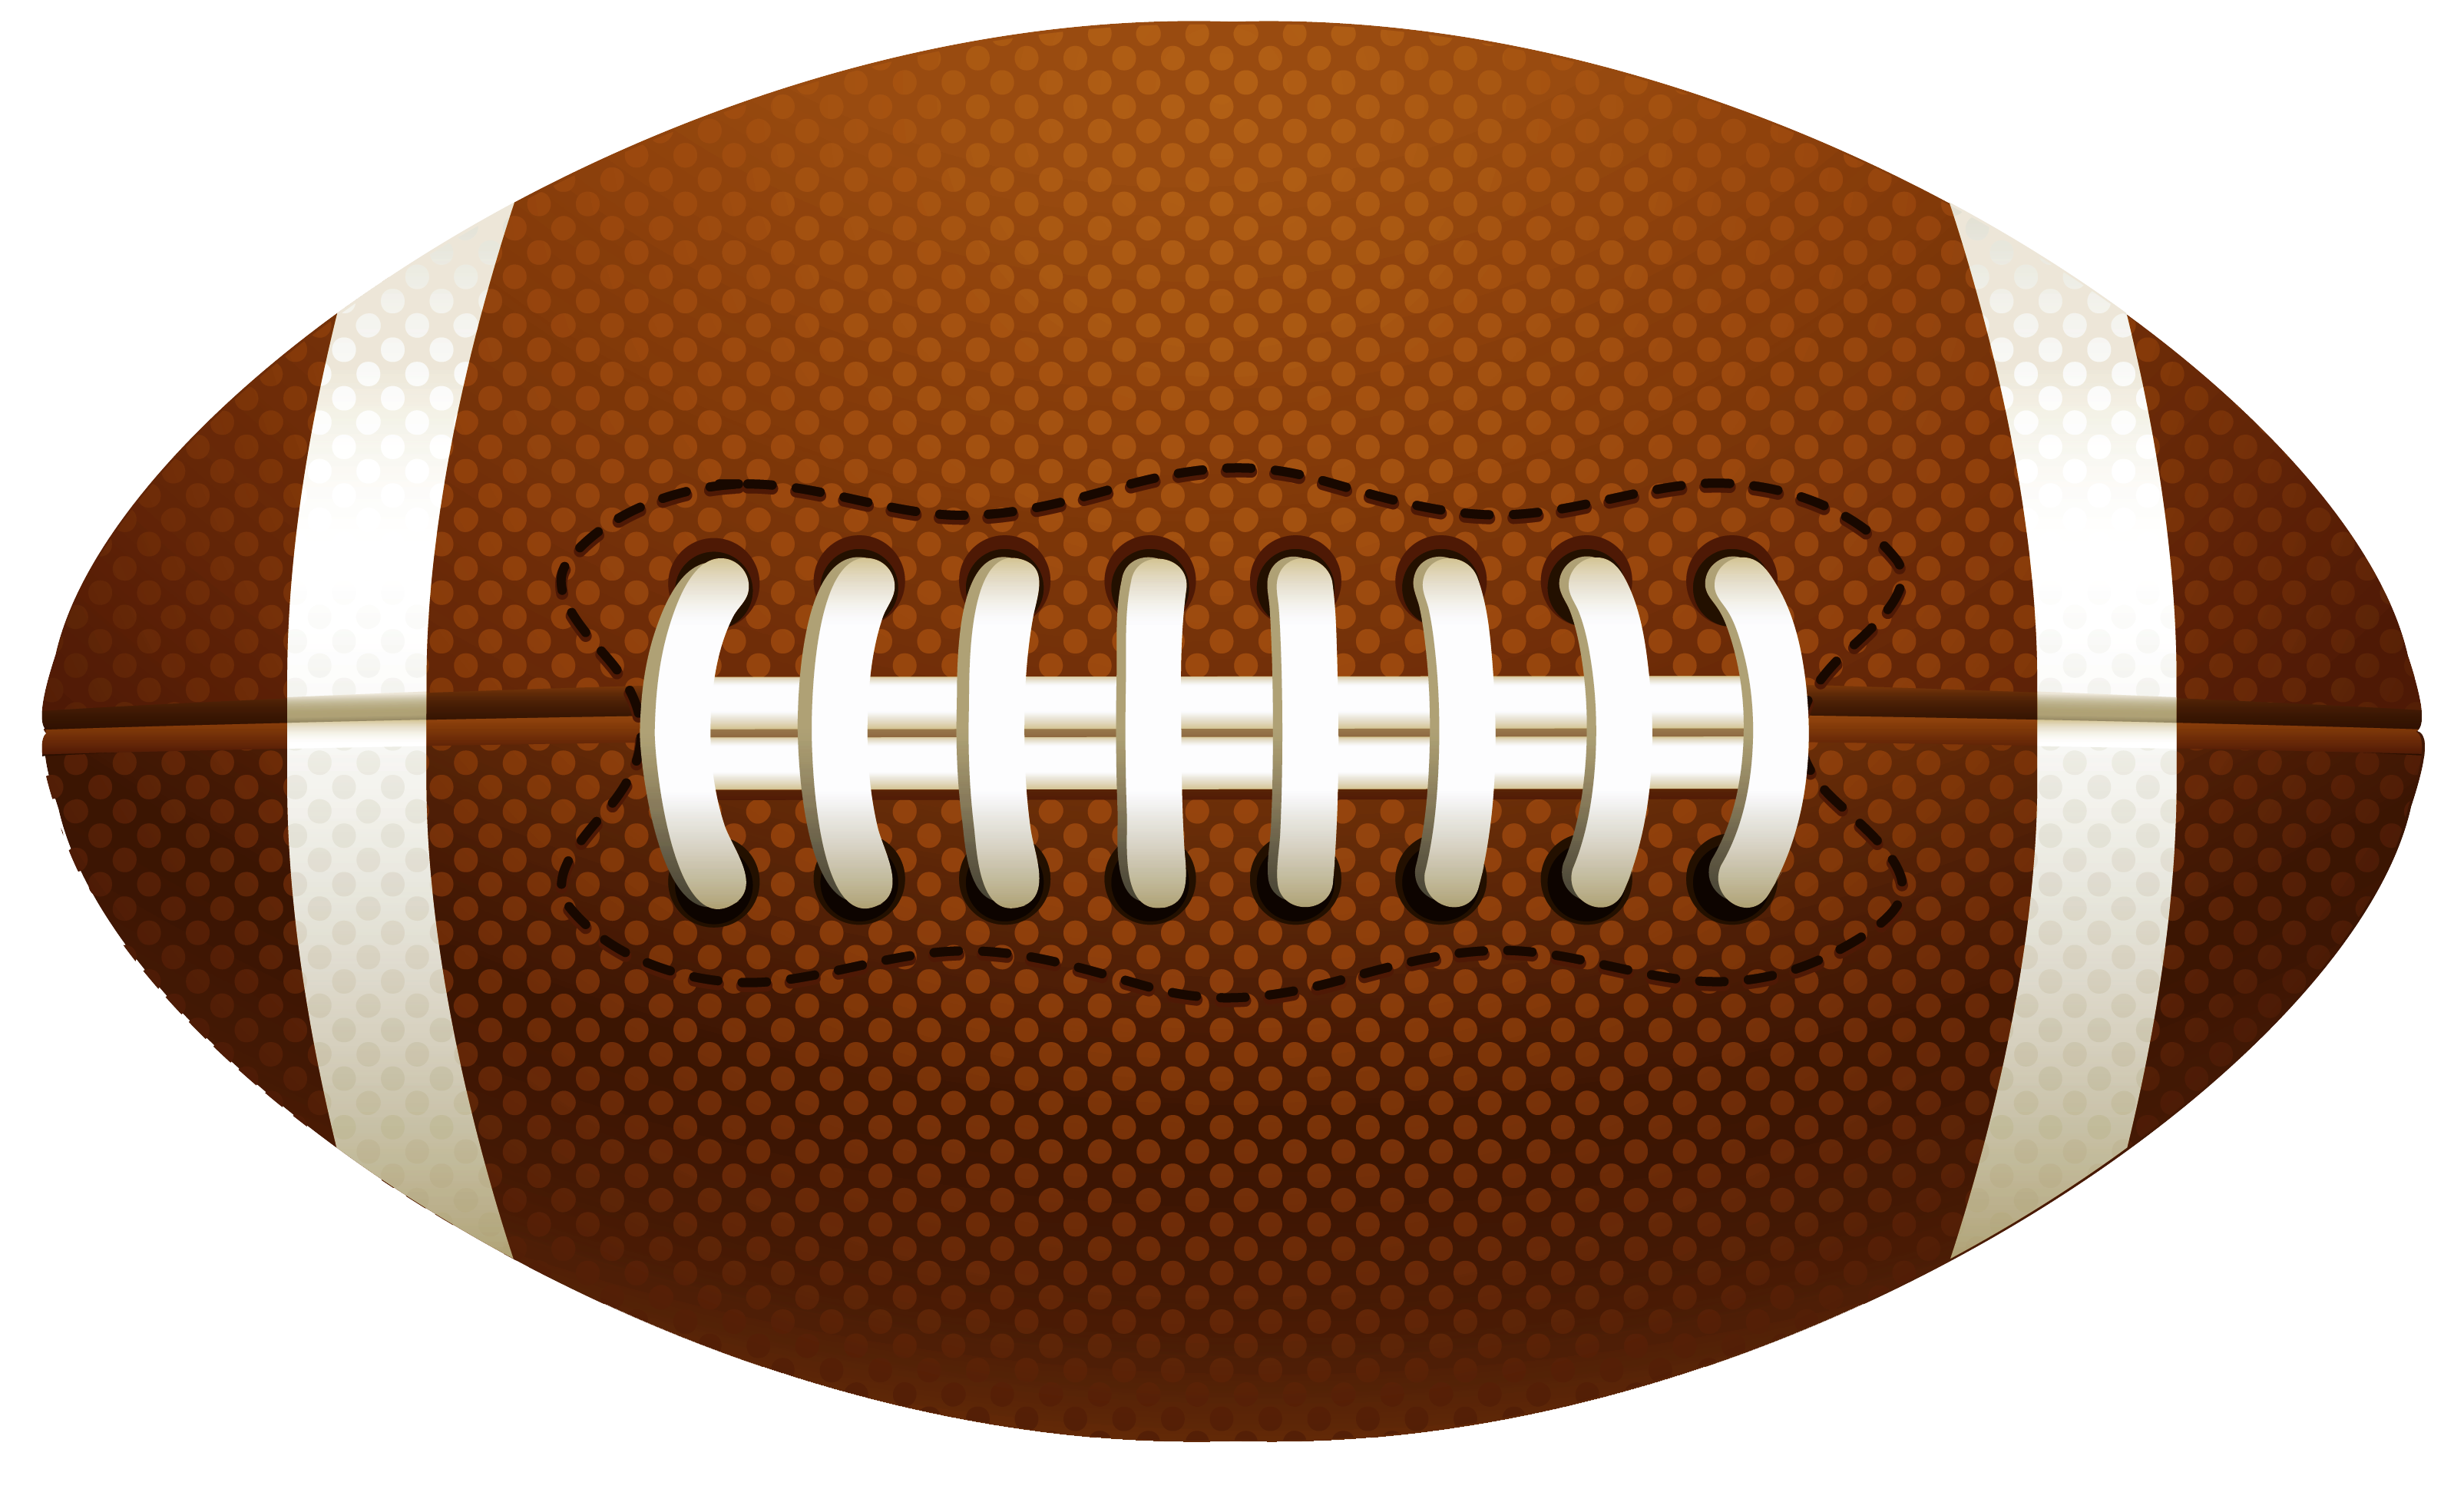 Football vector png. American ball clipart interests